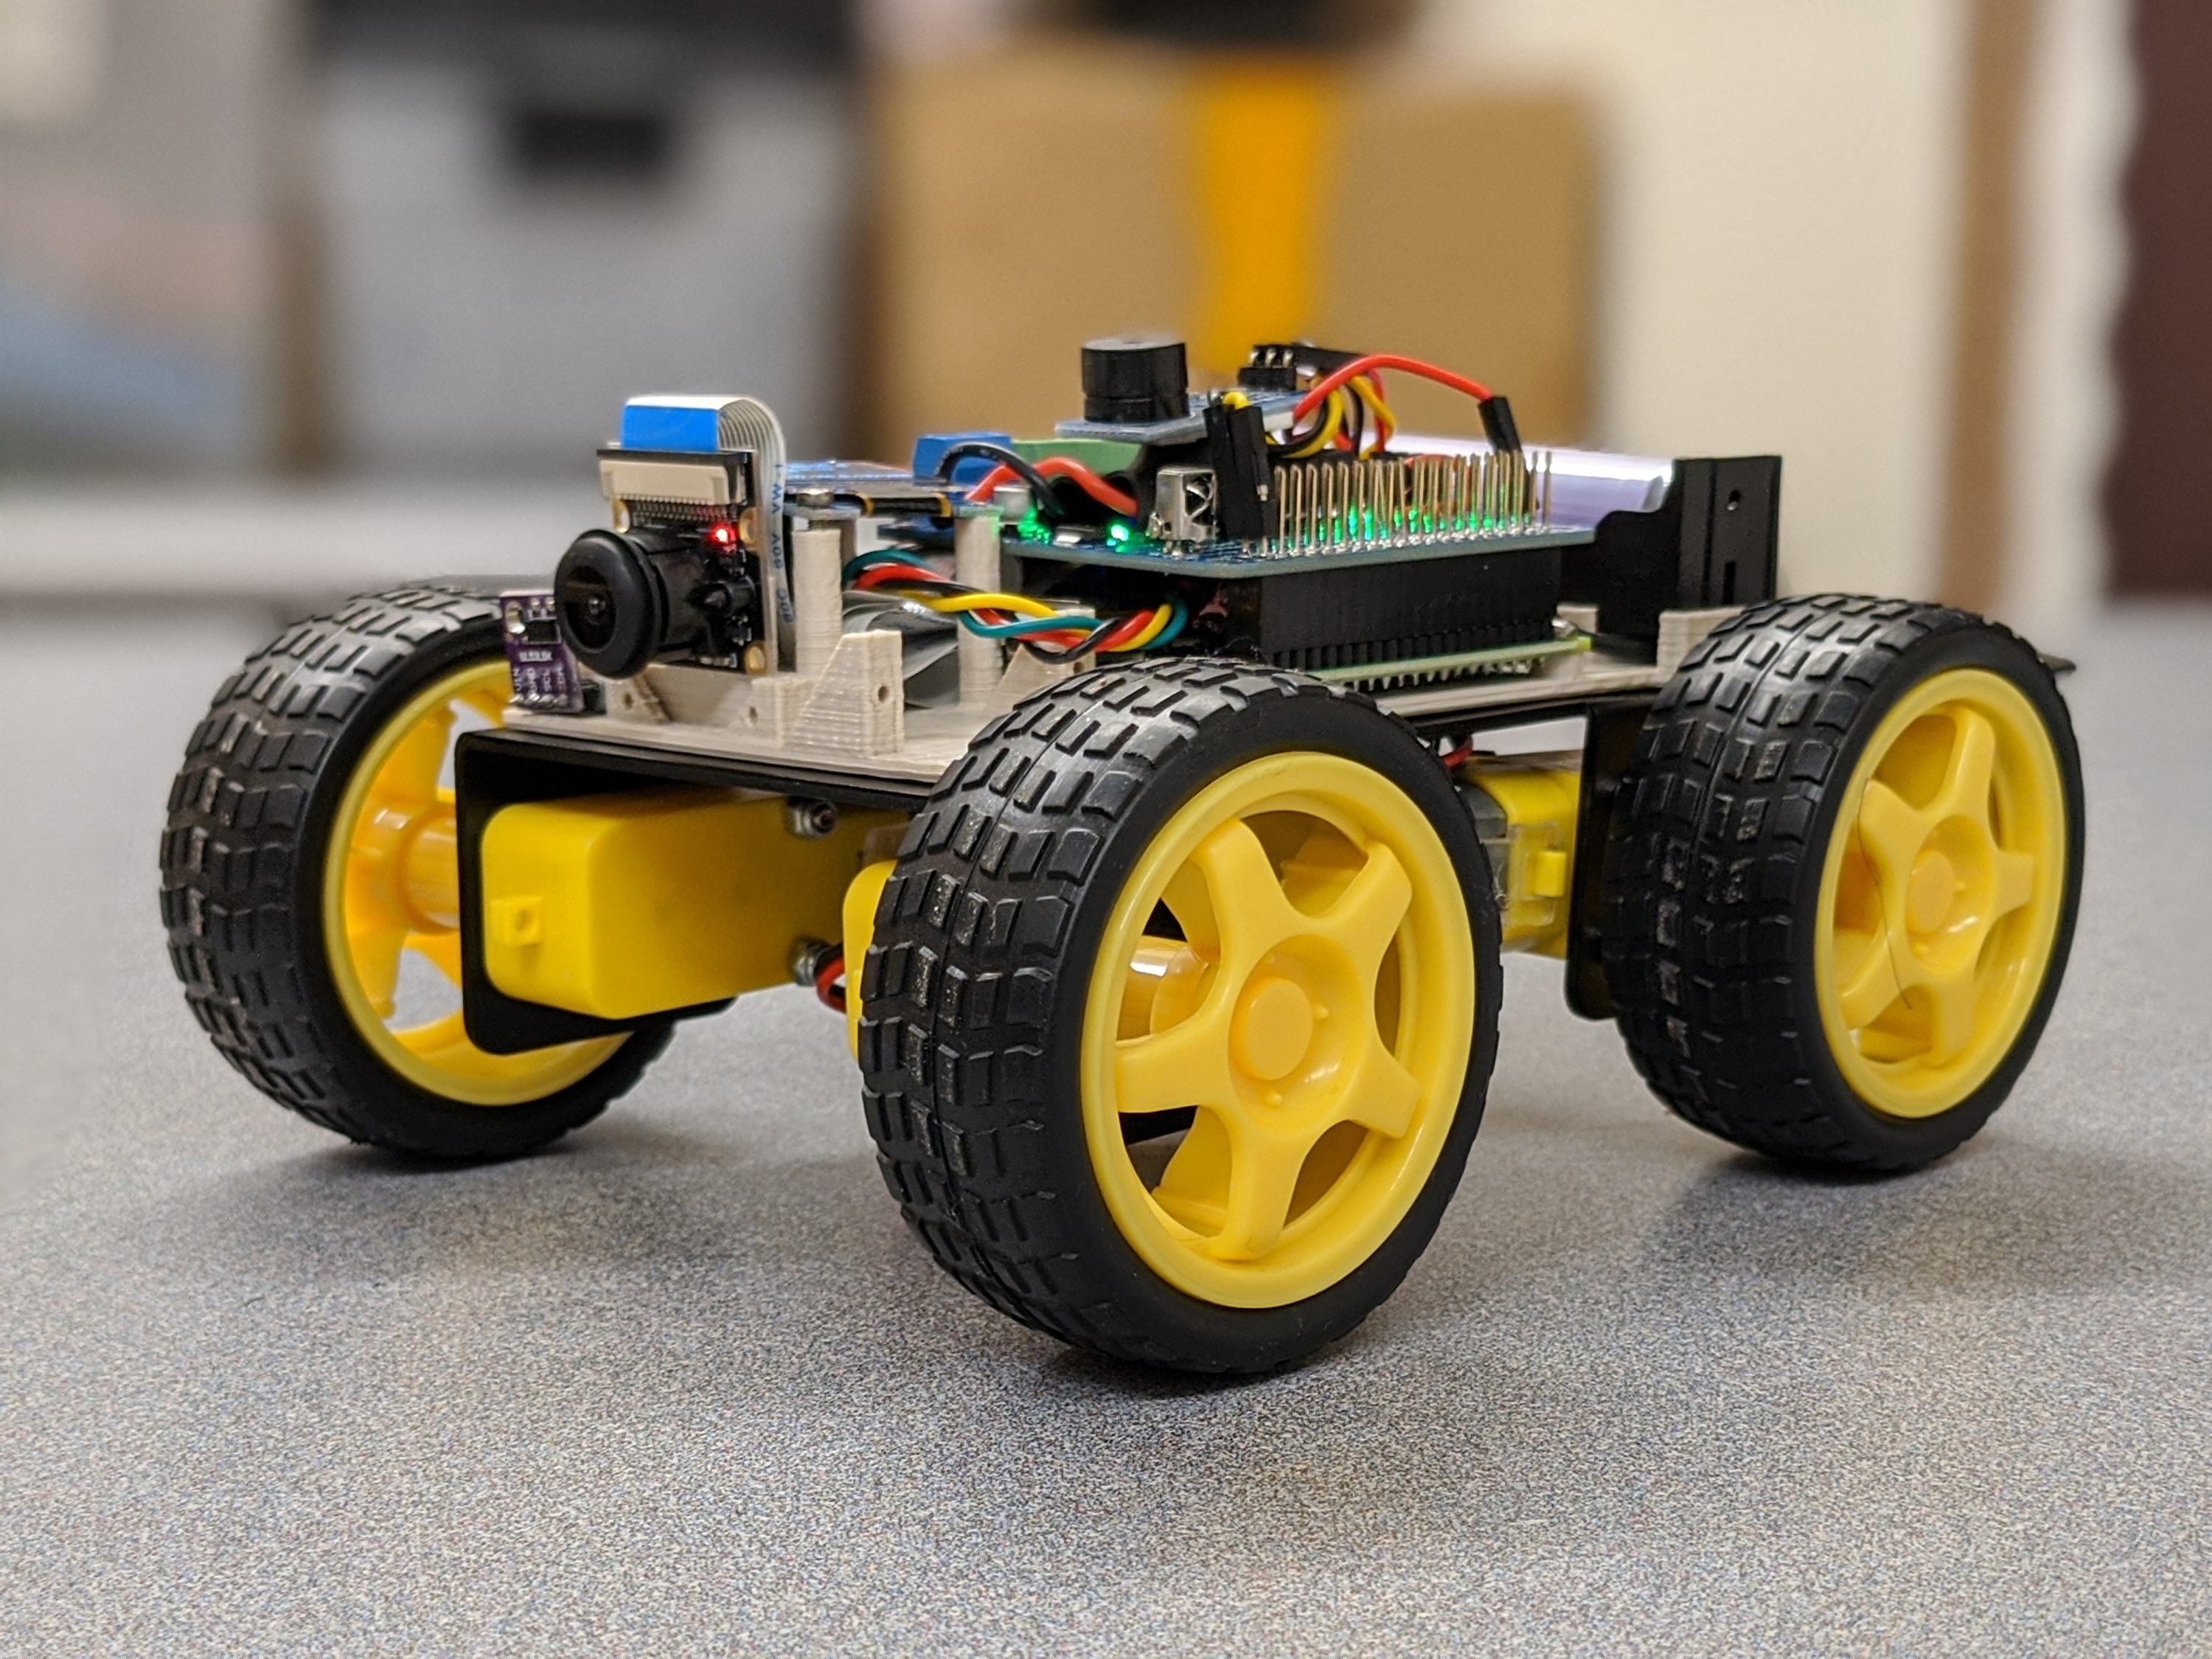 Completed Version Of The Raspberry Pi Car